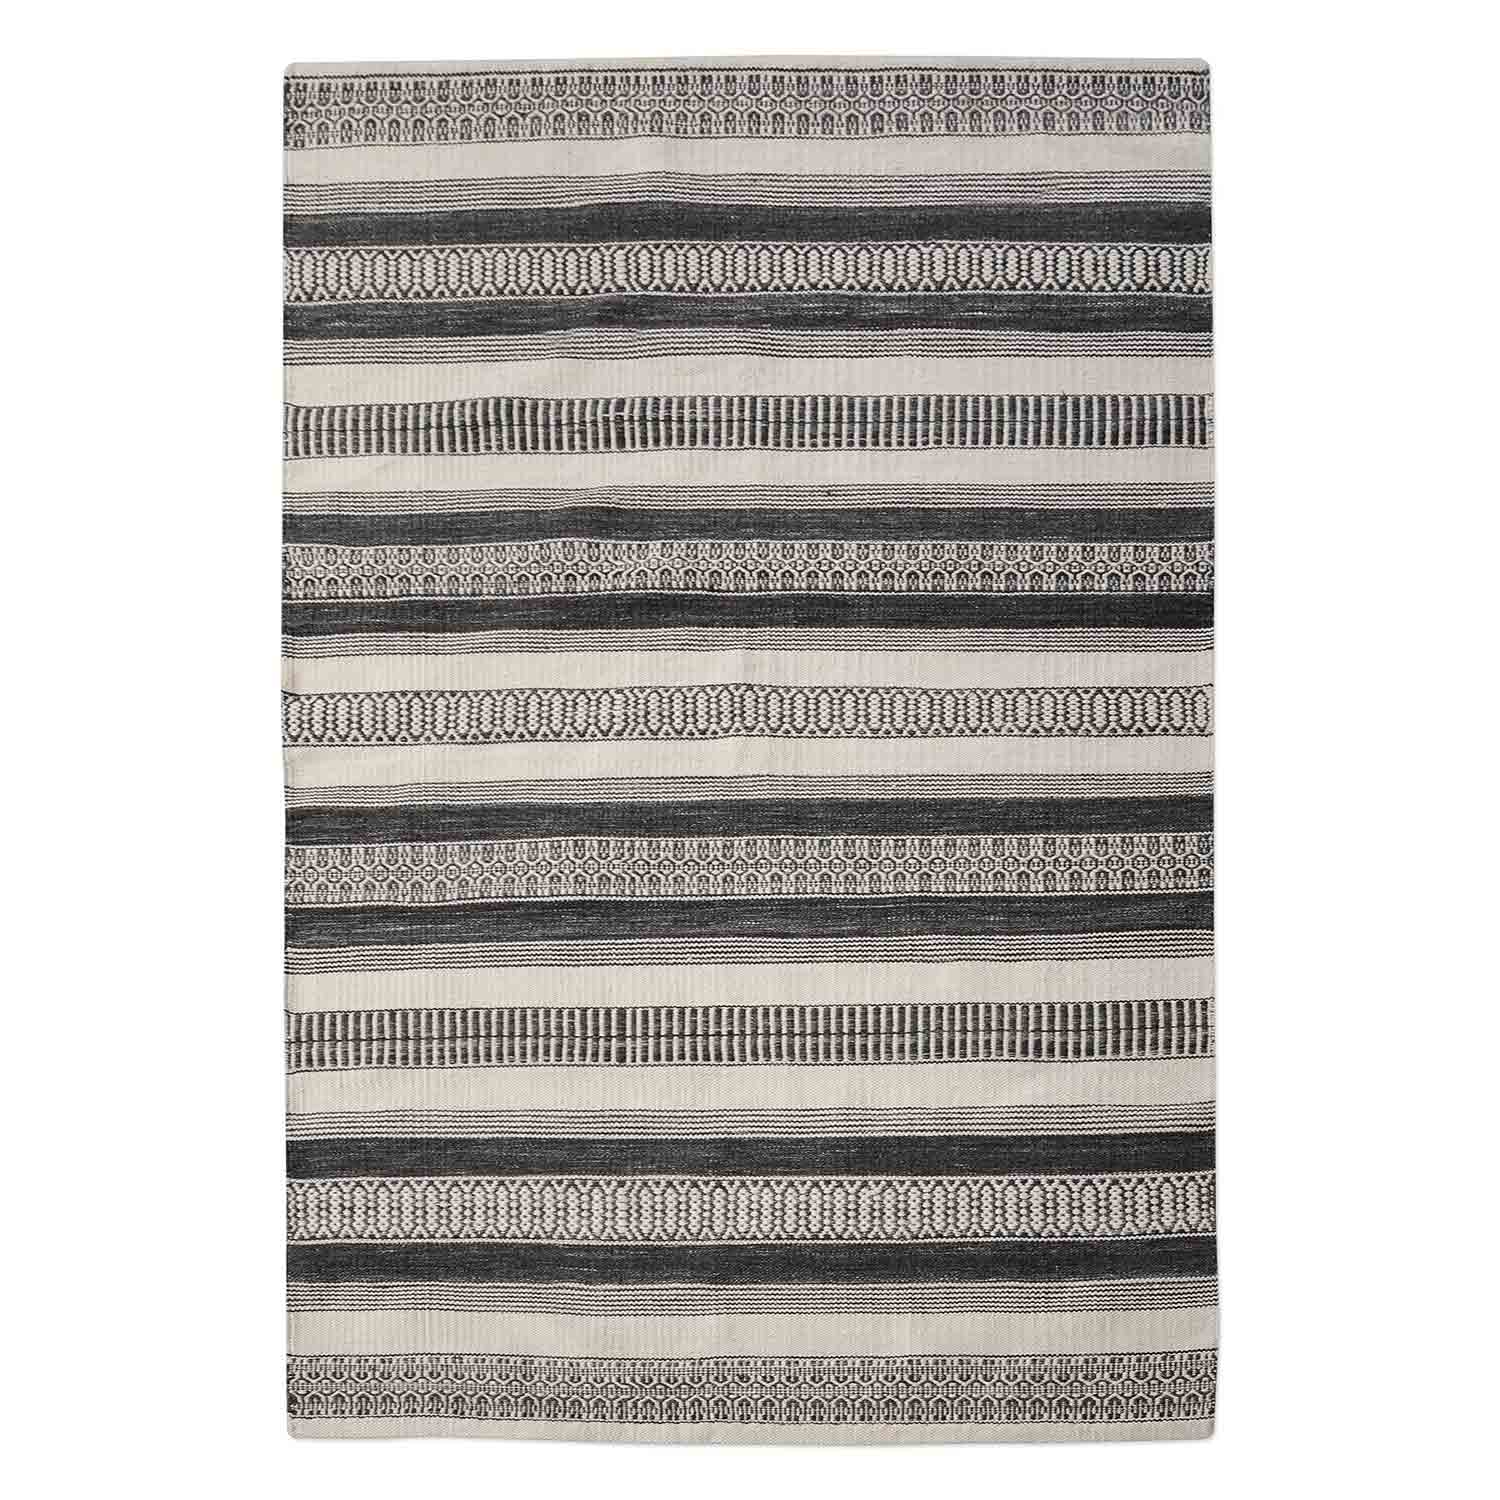 Uttermost Scottia 8 x 10 Rug - Charcoal